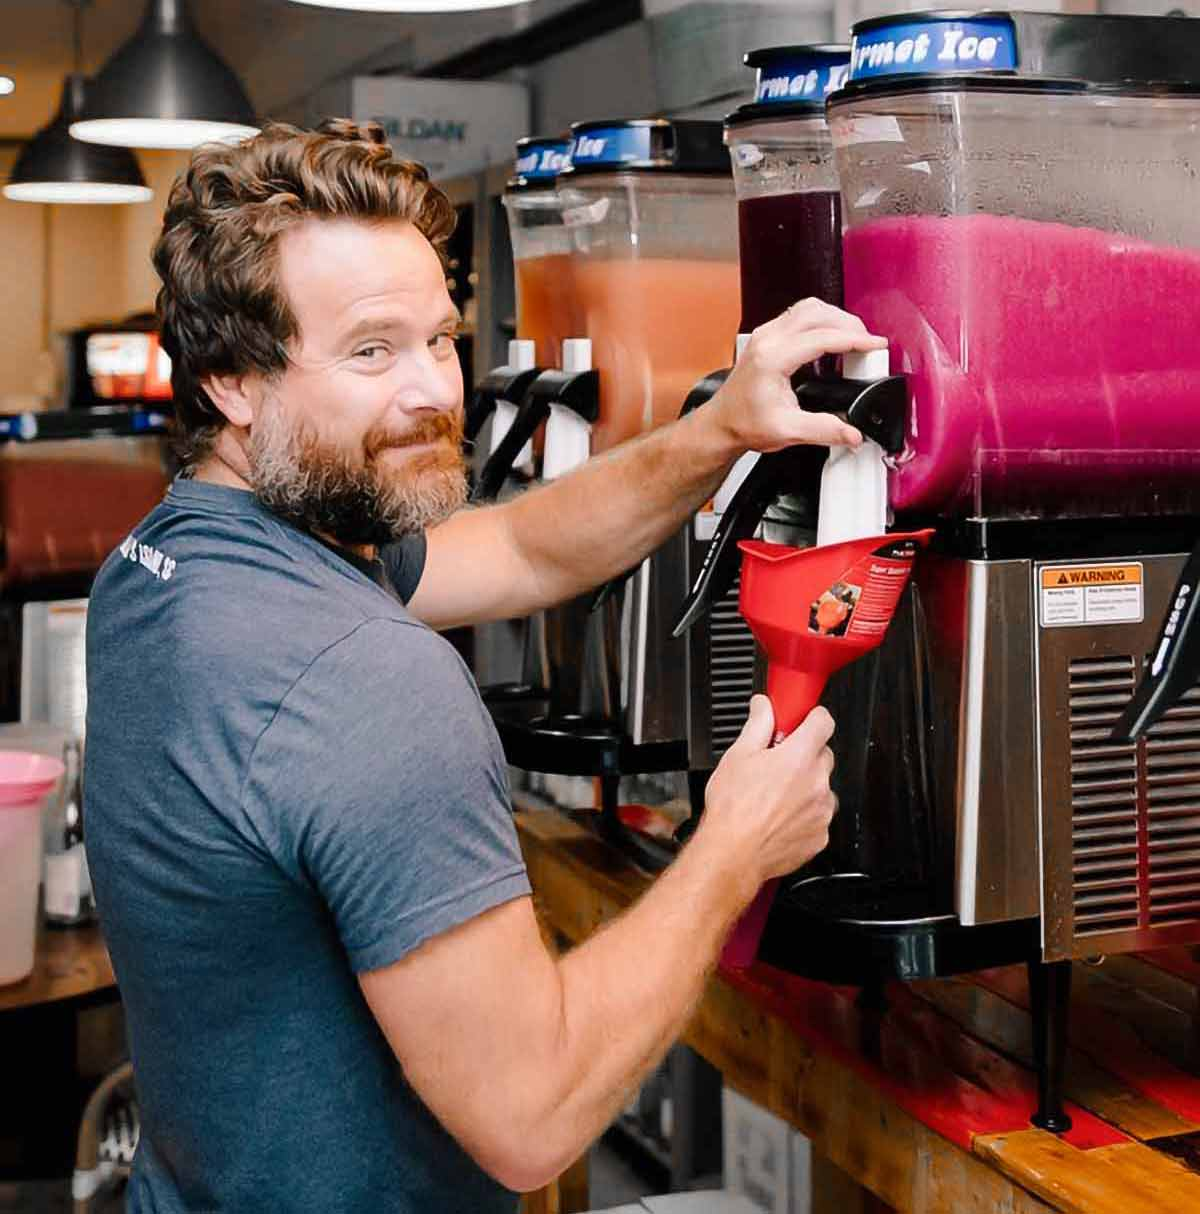 An image of Jess Patterson at a Frosé machine for the podcast, Talking With My Mouth Full, Ep. 30: Jess Patterson: Frosé King